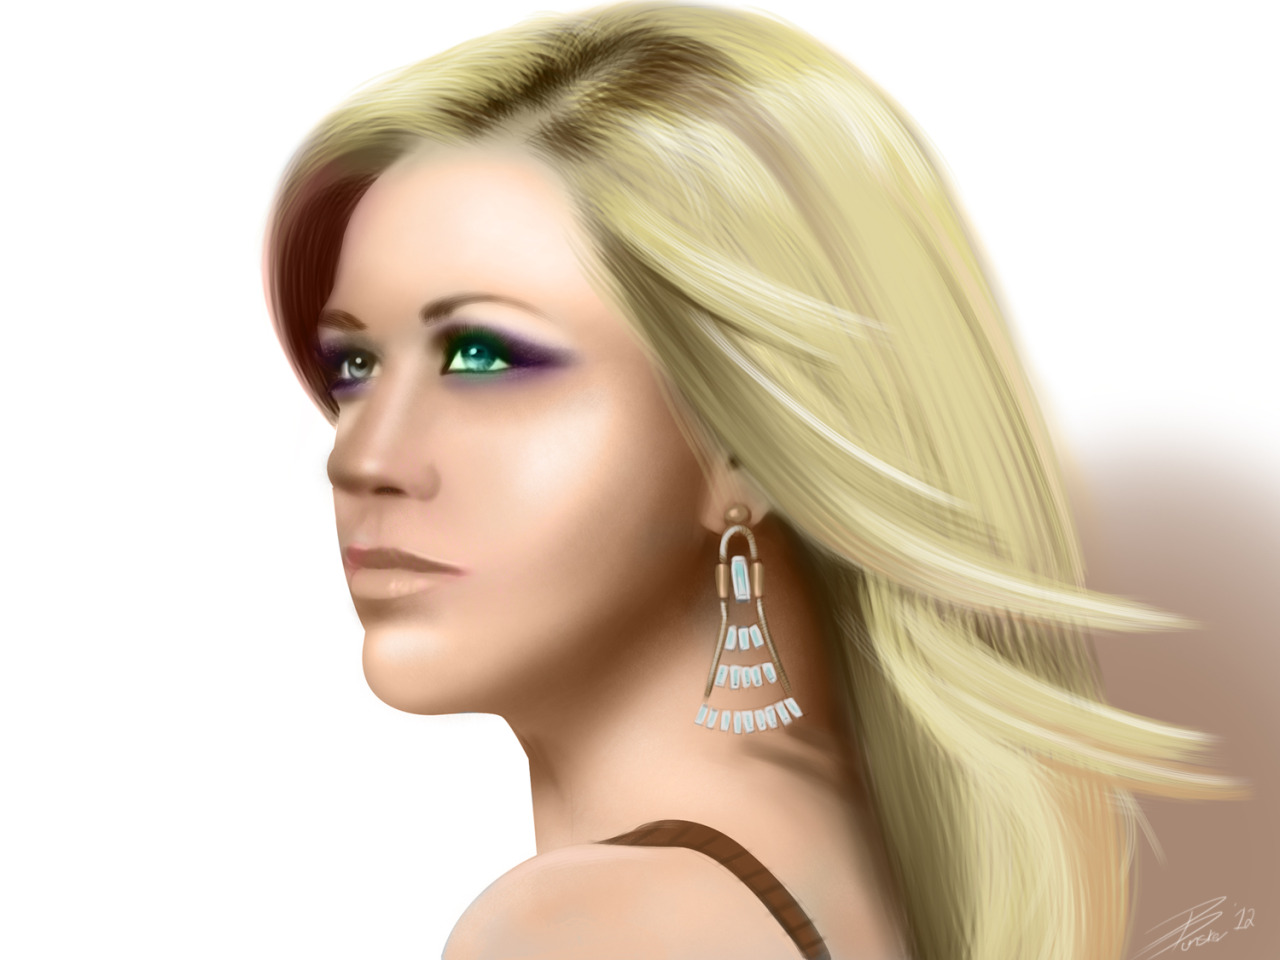 Kelly Clarkson painting - 10 hours